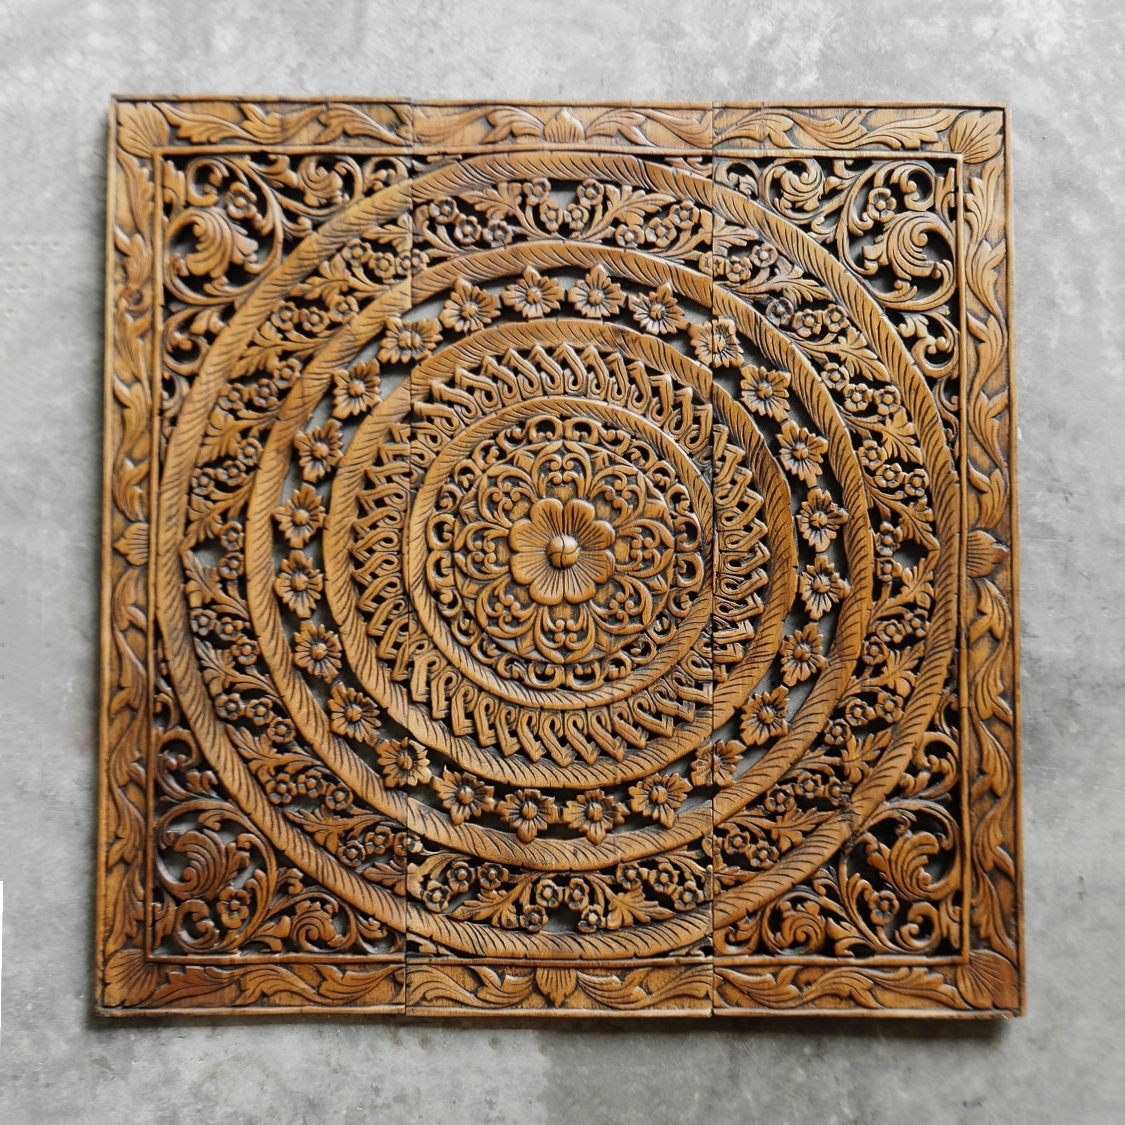 Wood Carved Wall Art In Well Liked Carved Wall Decor Elegant Moroccan Decent Wood Carving Wall Art (View 17 of 20)